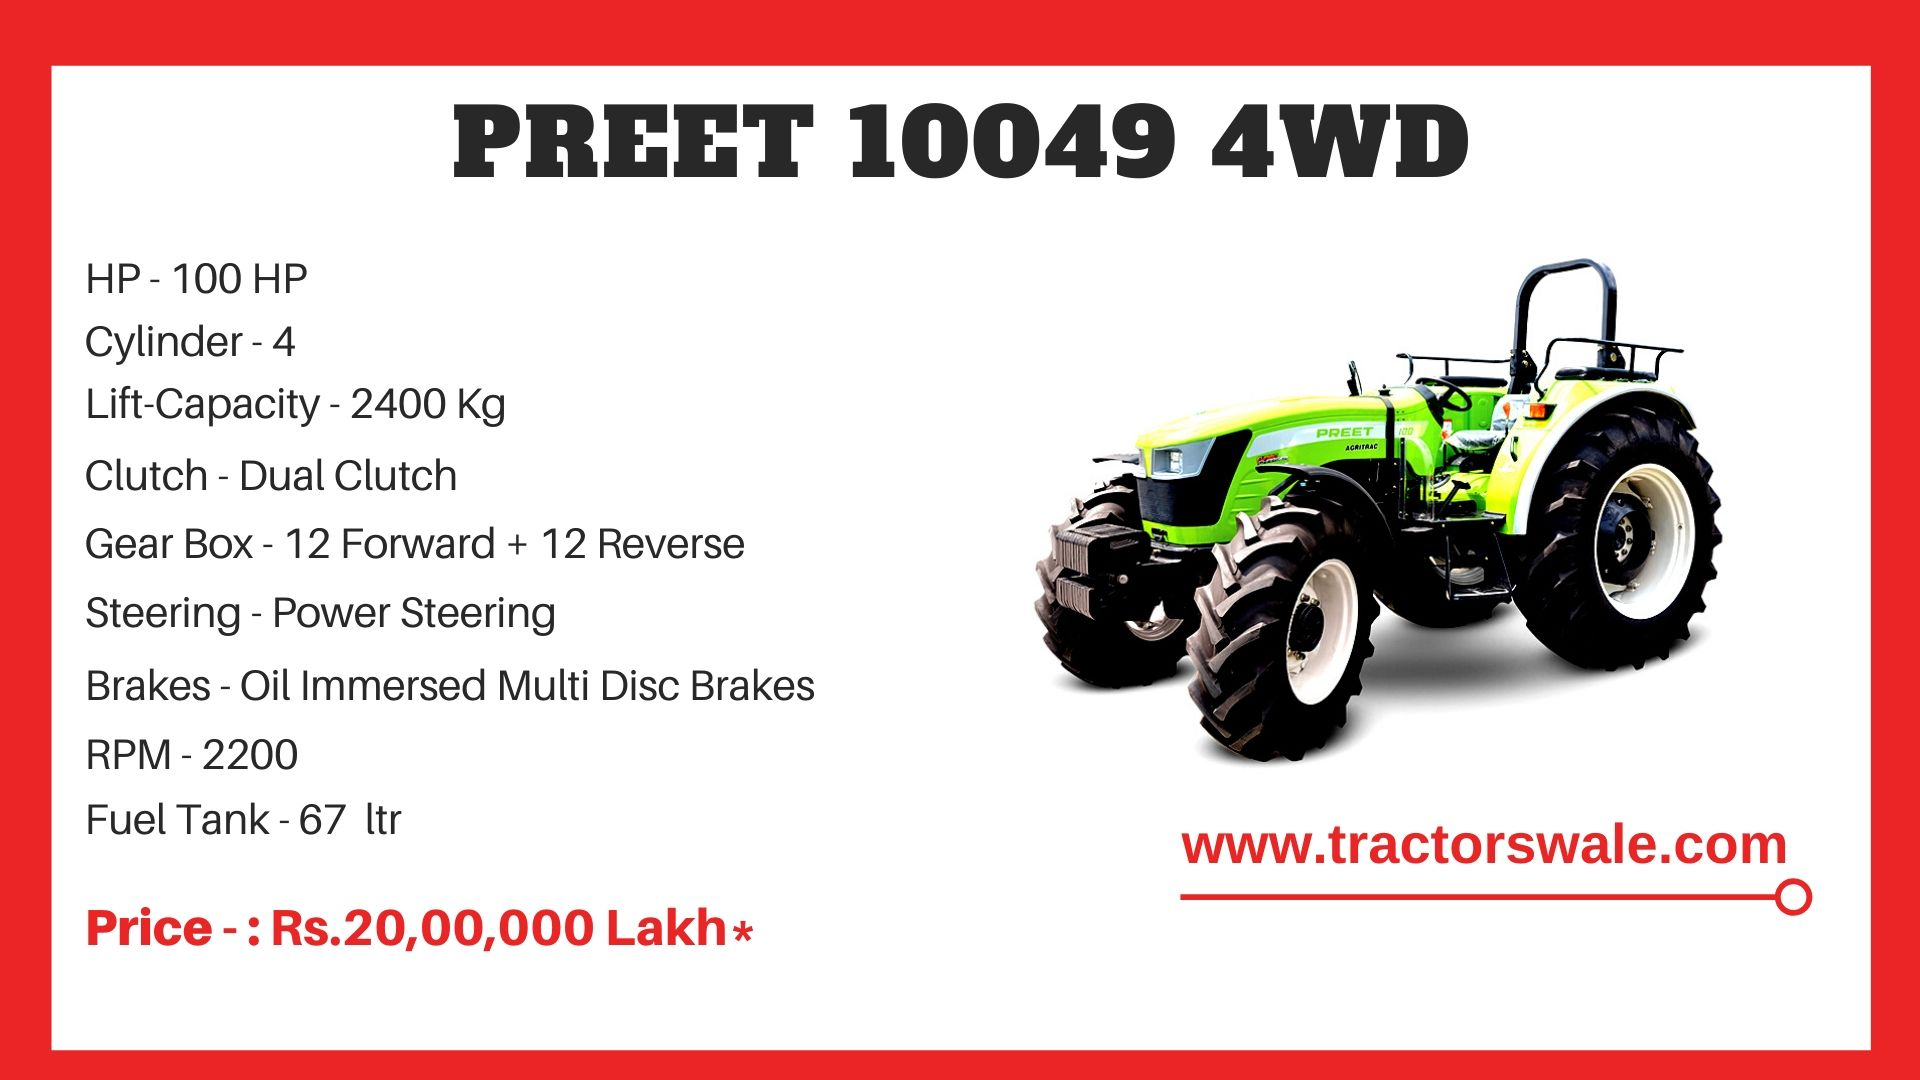 Preet 10049 4WD Tractor price